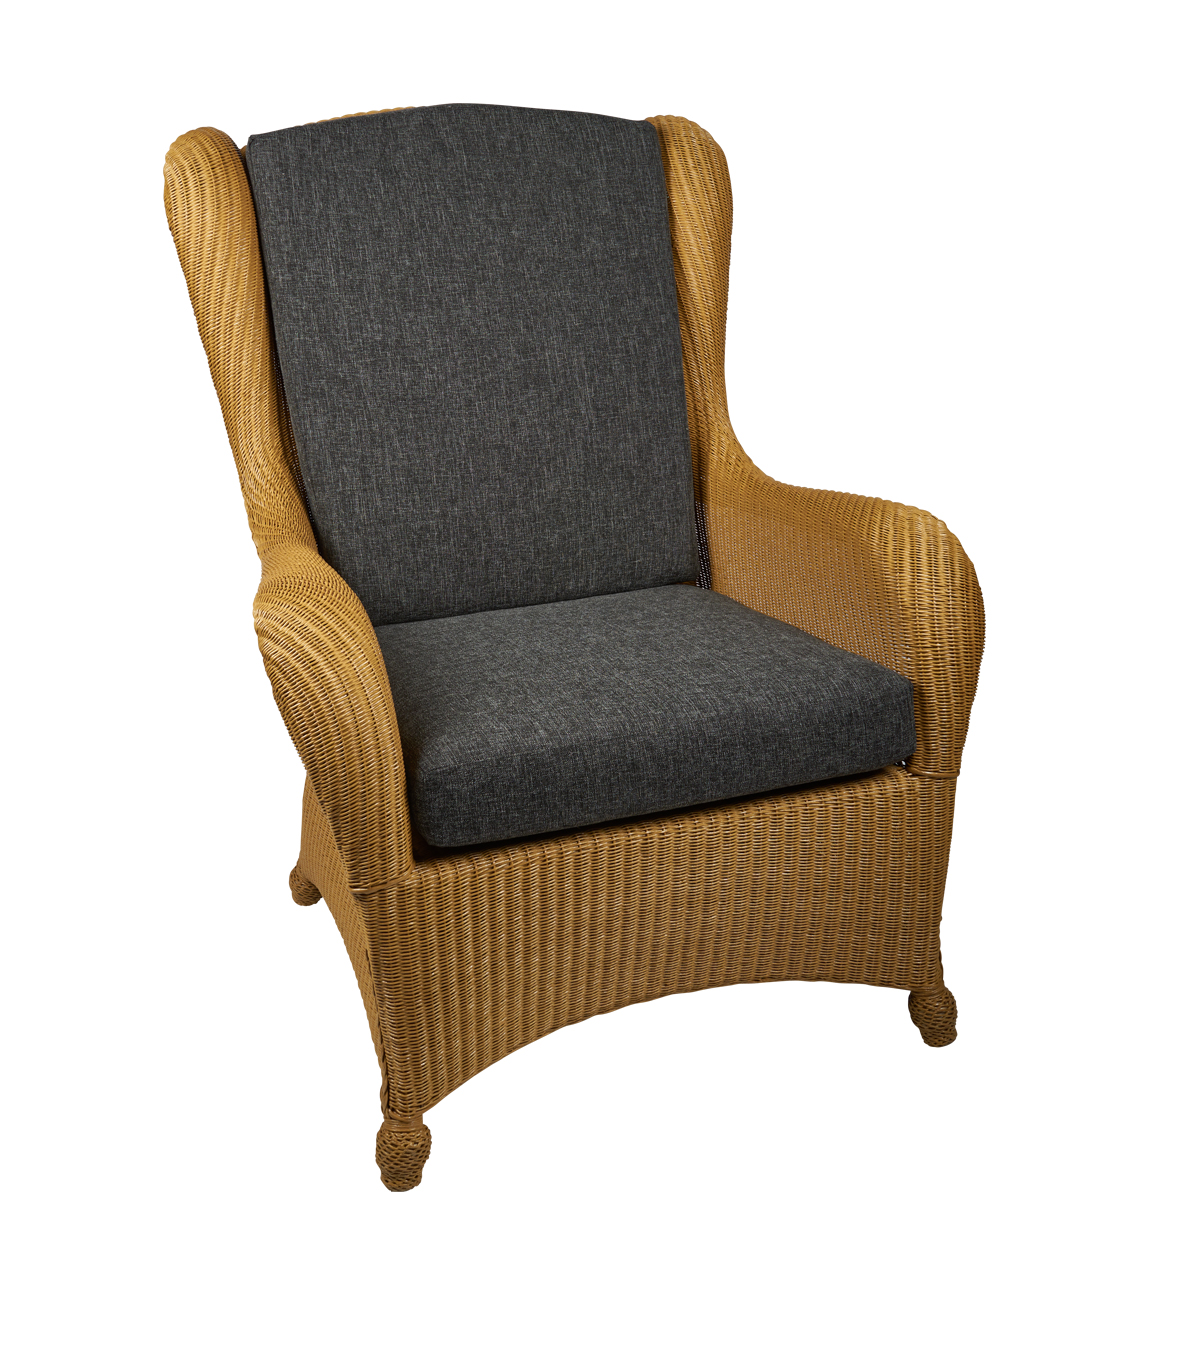 Loom Sessel King Chair Naturell